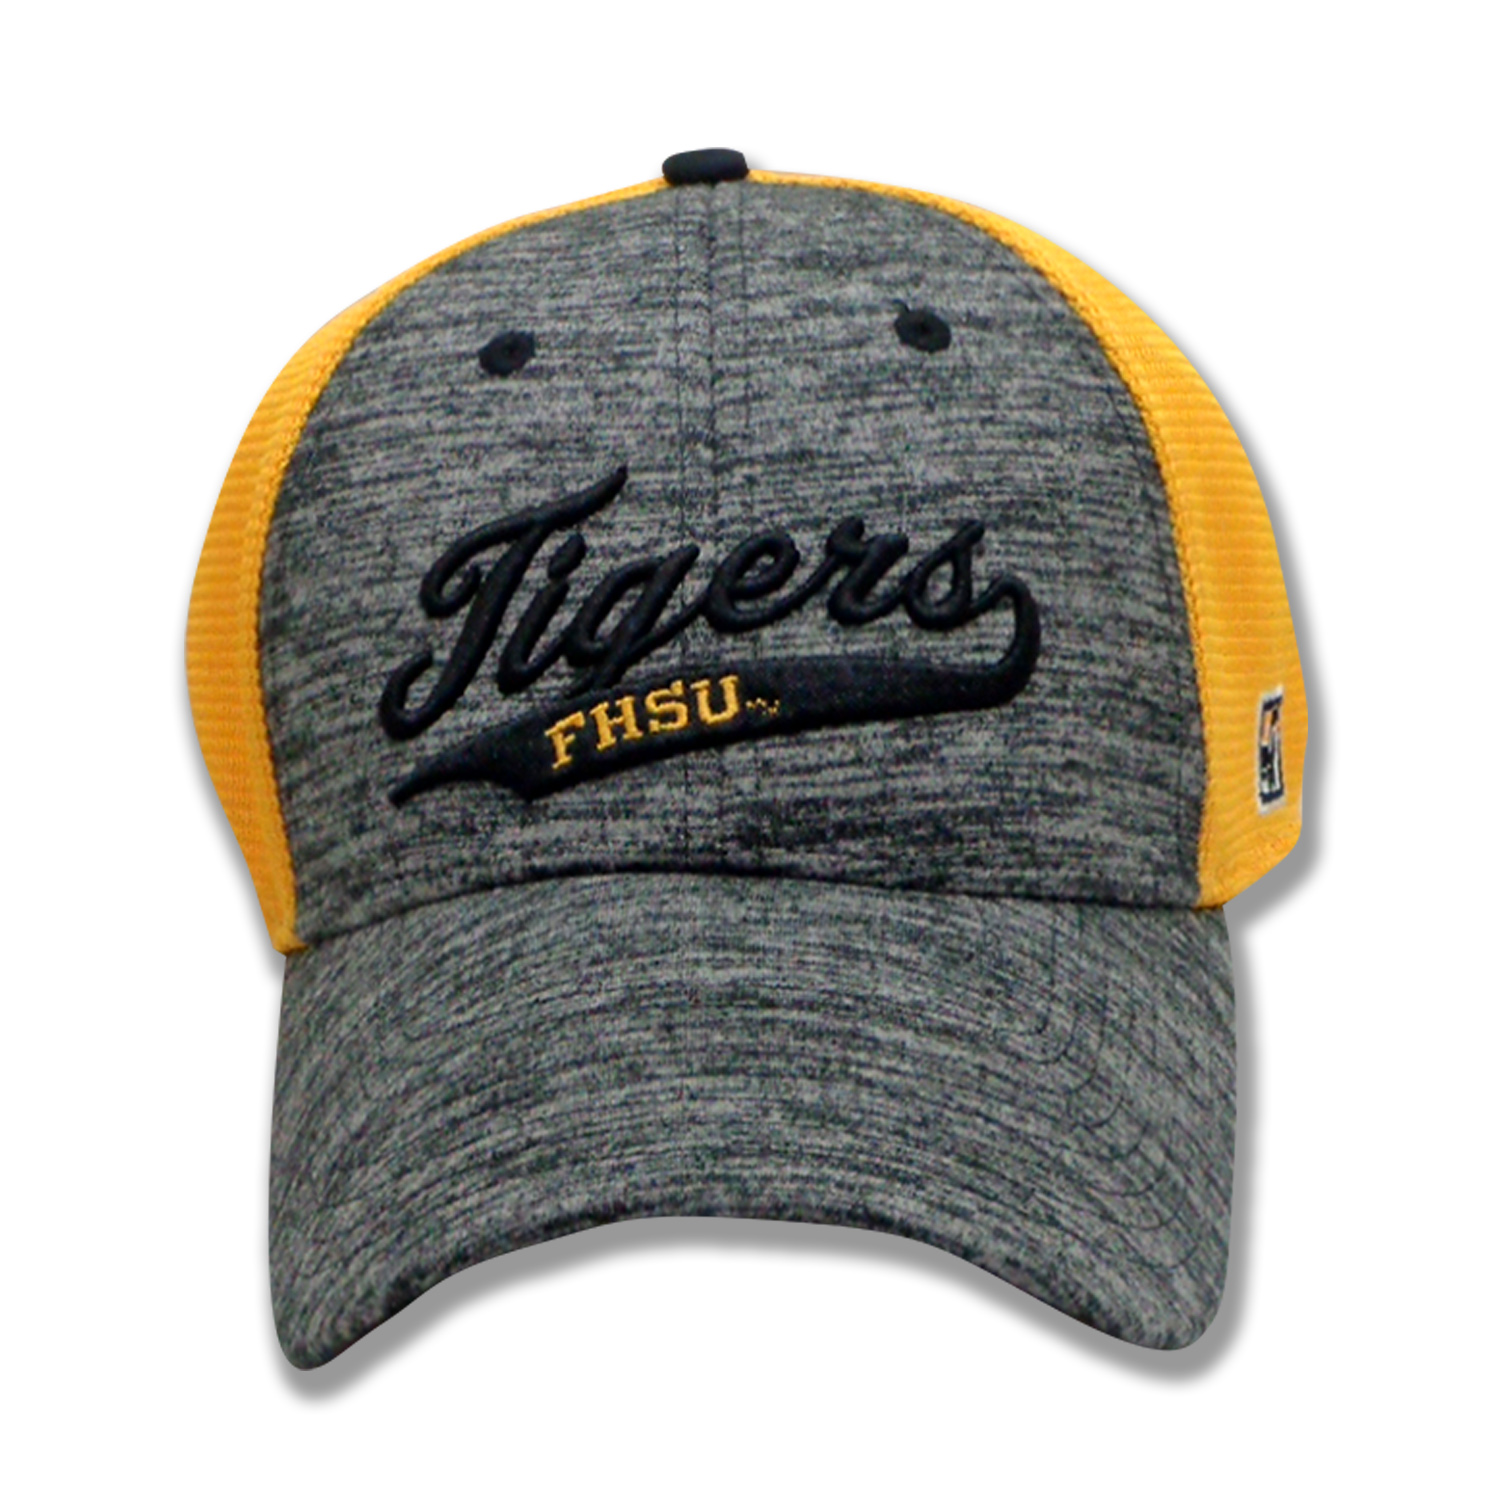 Image for the Tigers FHSU Athletic Heather and Diamond Mesh Stretch-Fit Hat, Black Heater Gold Mesh, The Game product